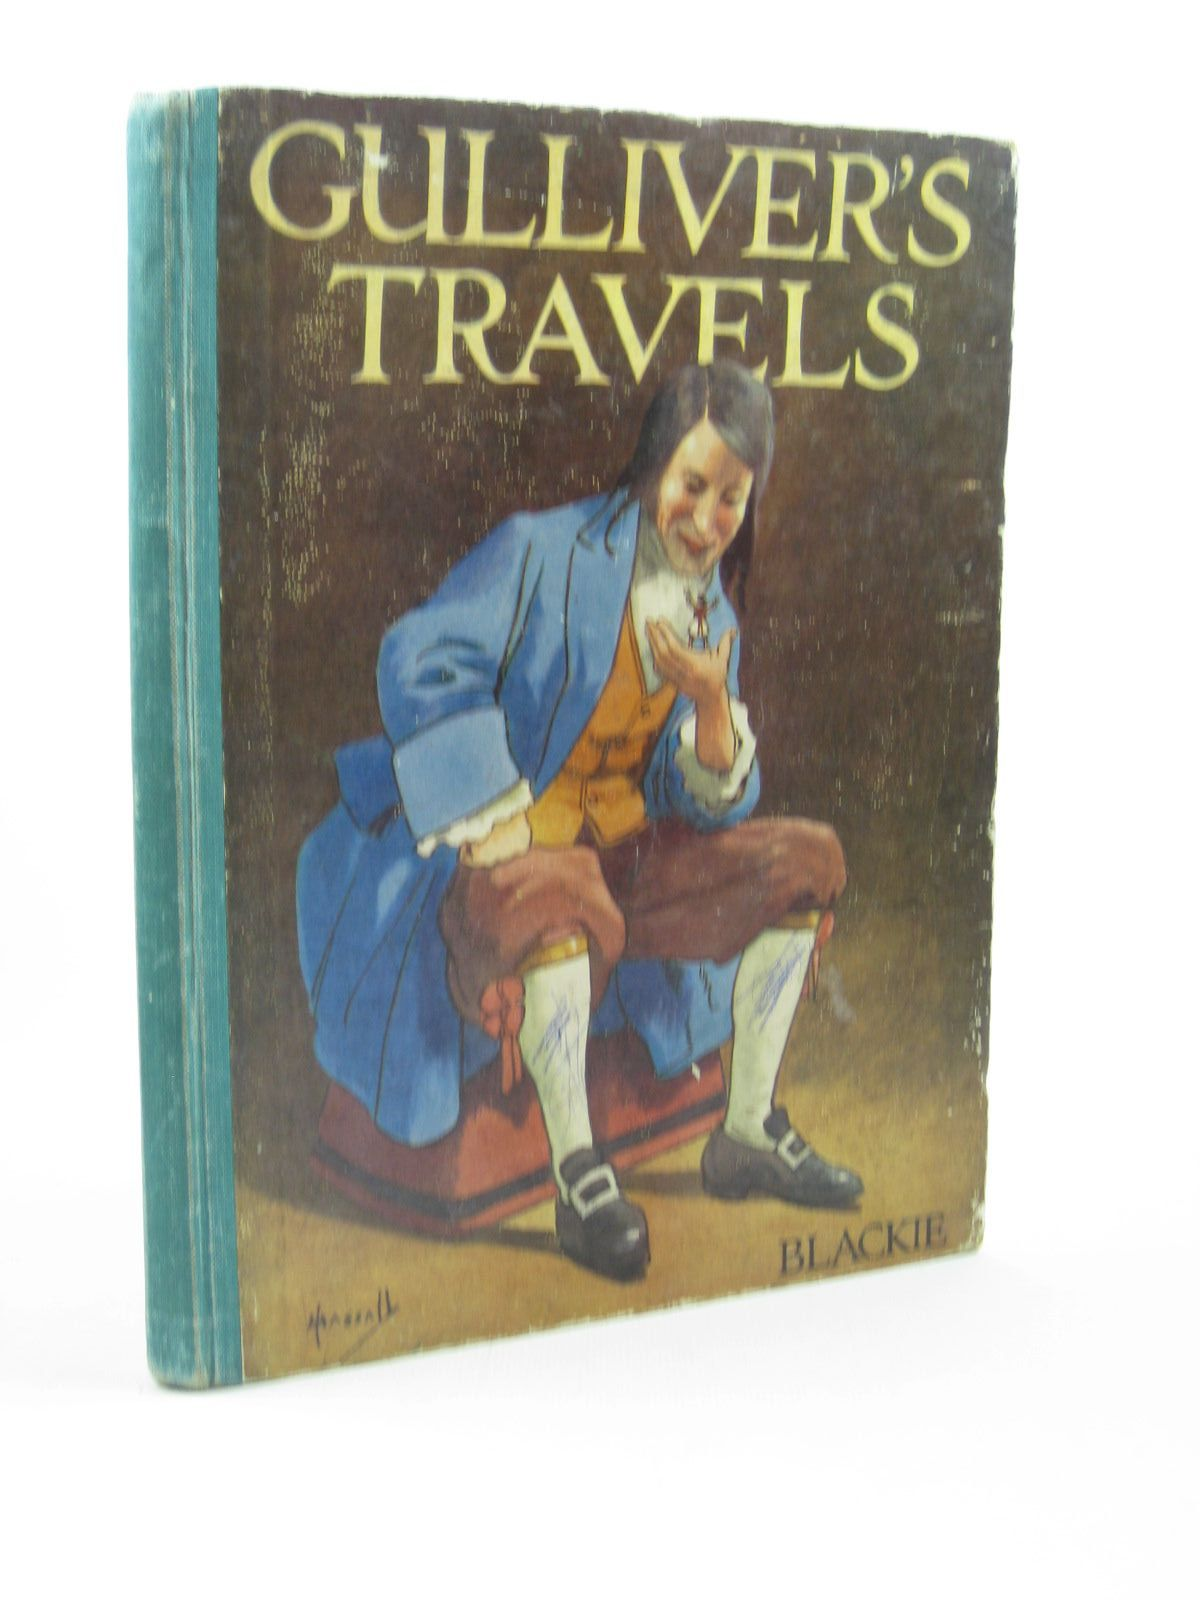 gulliver s travels allegory A summary of themes in jonathan swift's gulliver's travels learn exactly what happened in this chapter, scene, or section of gulliver's travels and what it means perfect for acing essays, tests, and quizzes, as well as for writing lesson plans.